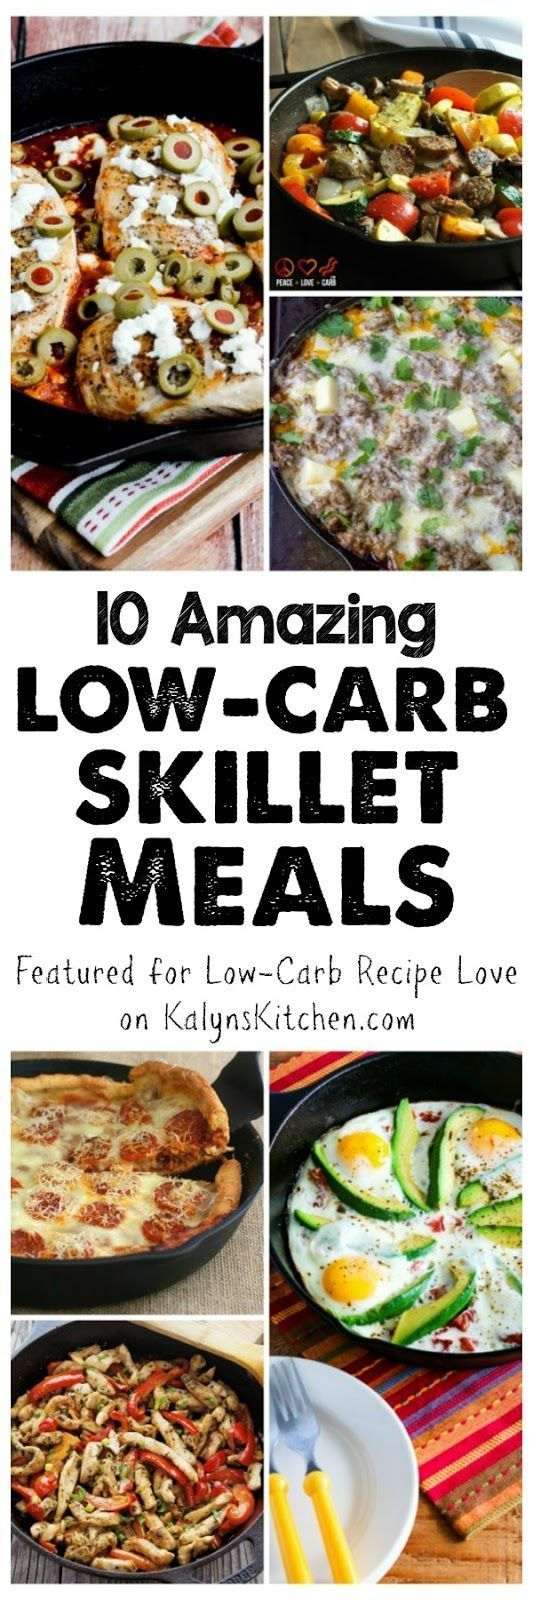 Ten Low-Carb Skillet Meals; some amazing ideas here for meals that only need one skillet and all these tasty meals are also Keto, low-glycemic, and gluten-free and most can be South Beach Diet friendly.  [featured for Low-Carb Recipe Love on http://KalynsKitchen.com]